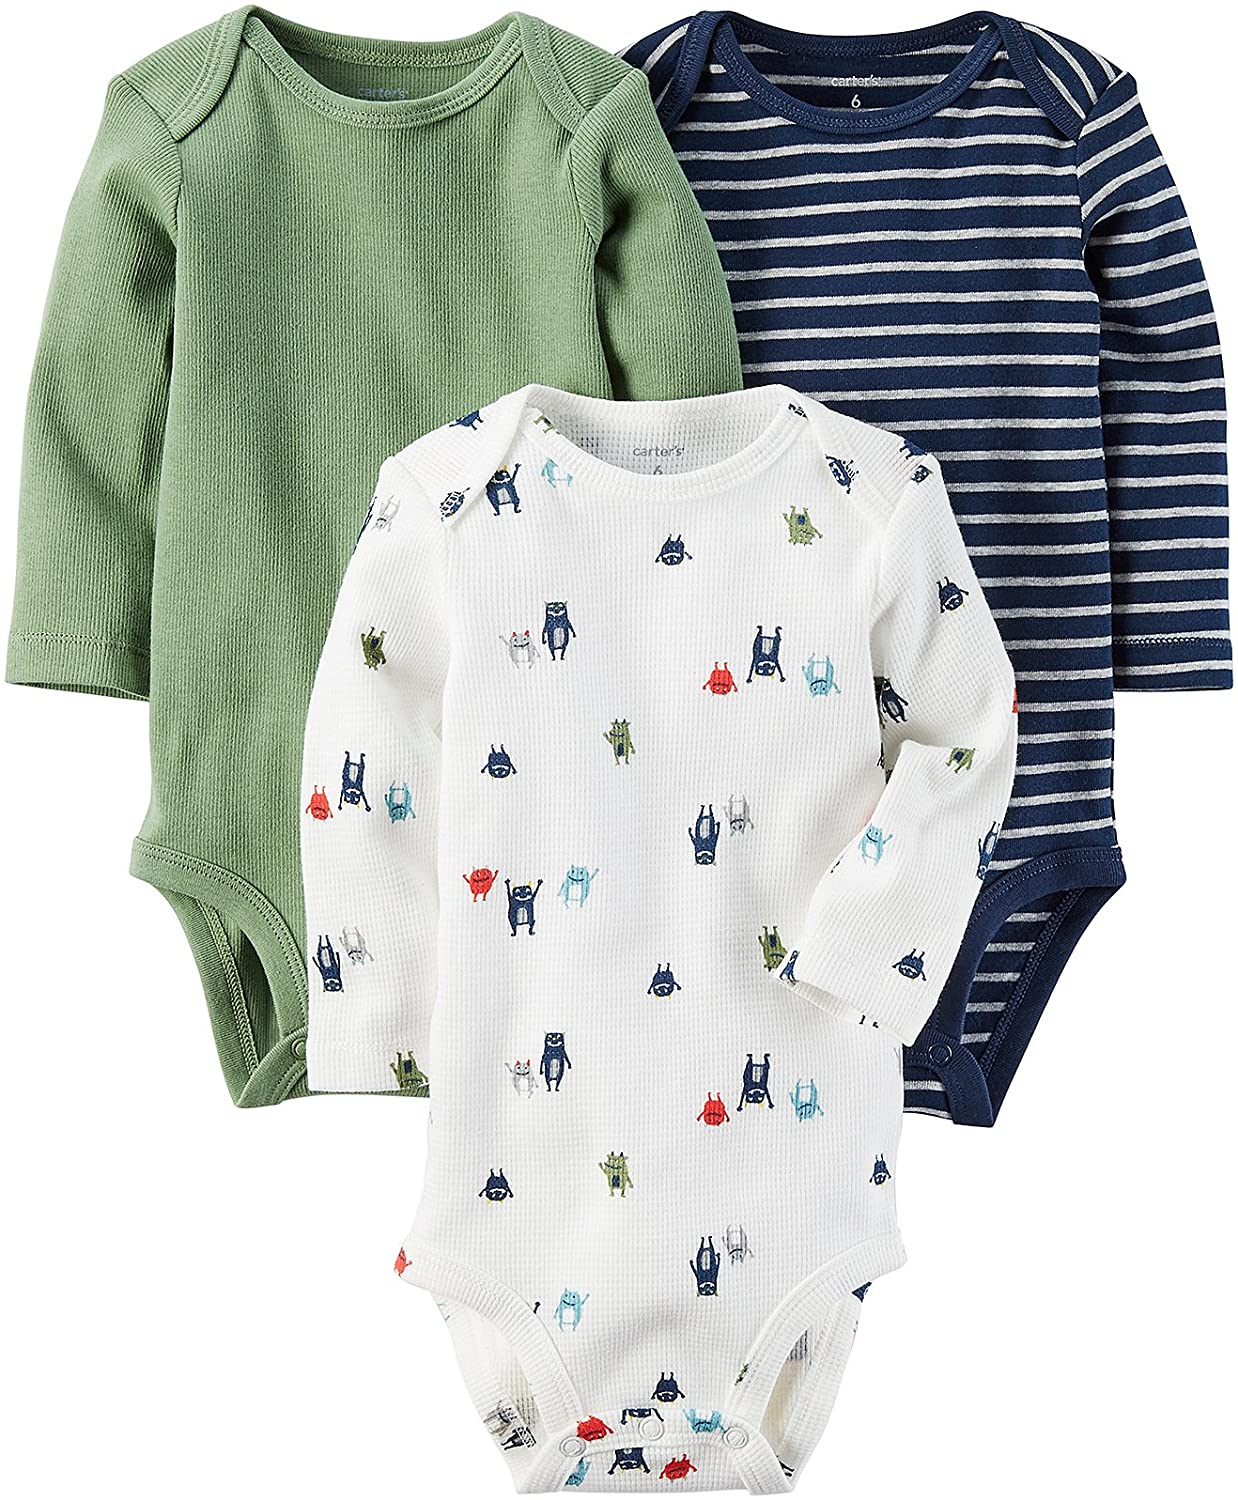 Carter's Infant Boys Henley Baby Outfit Winter Bodysuit 3PC Long Sleeve Set